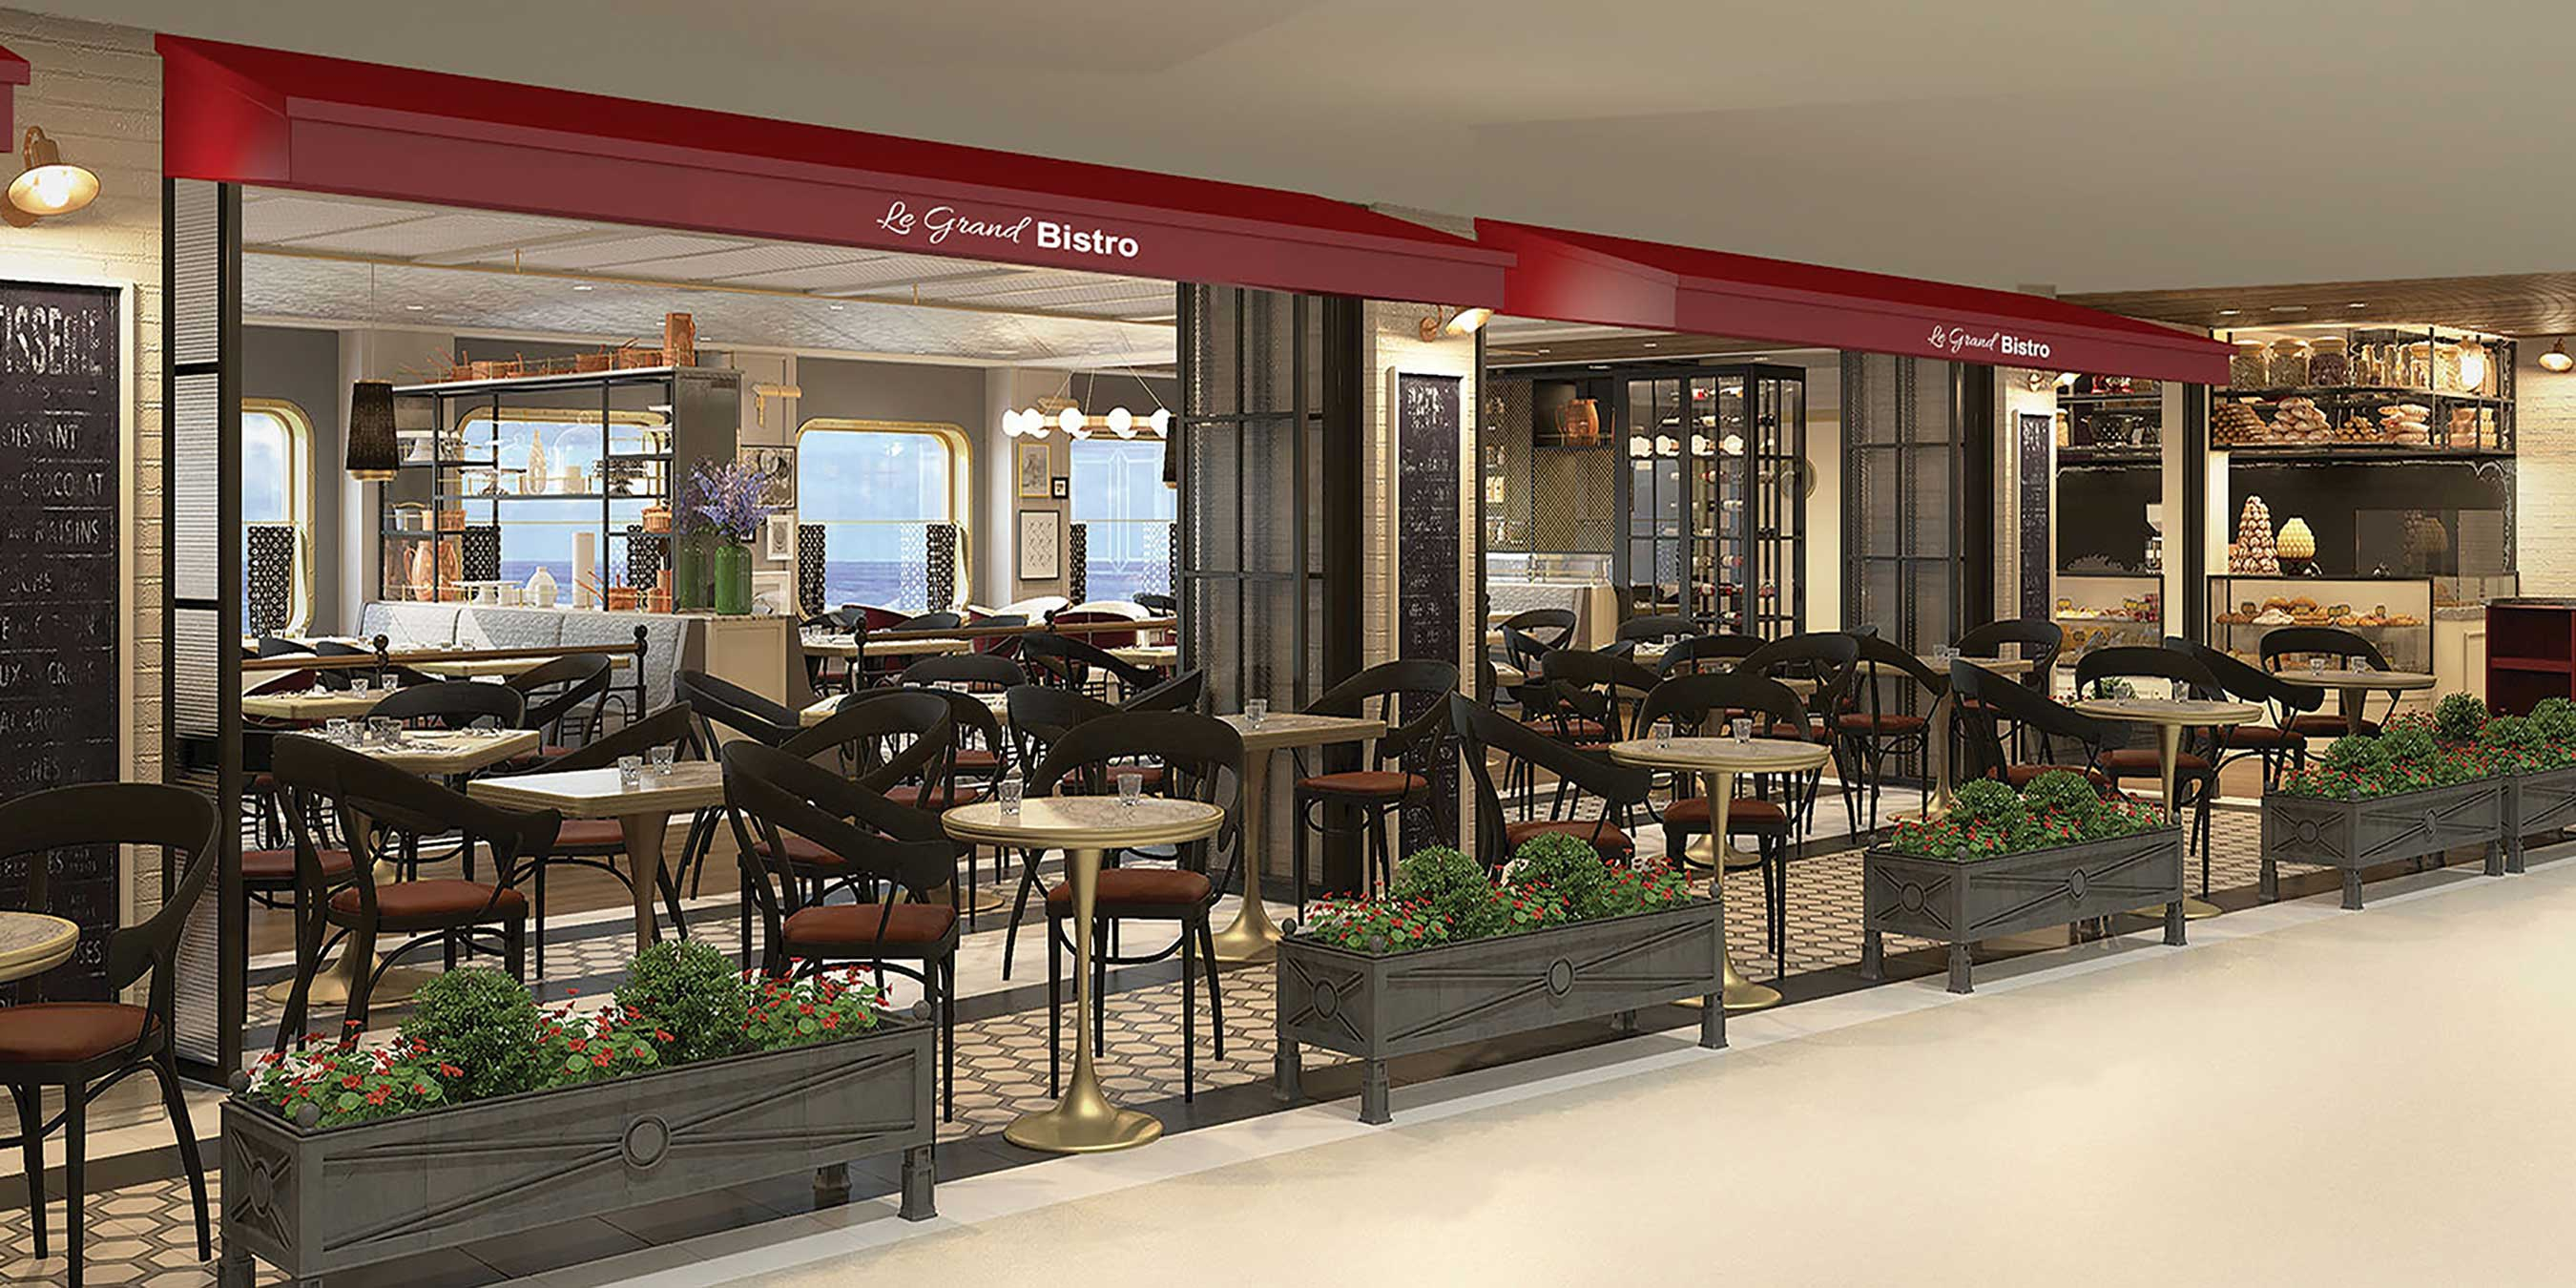 Le Grand Bistro will serve upscale French cuisine with stunning views of the sea